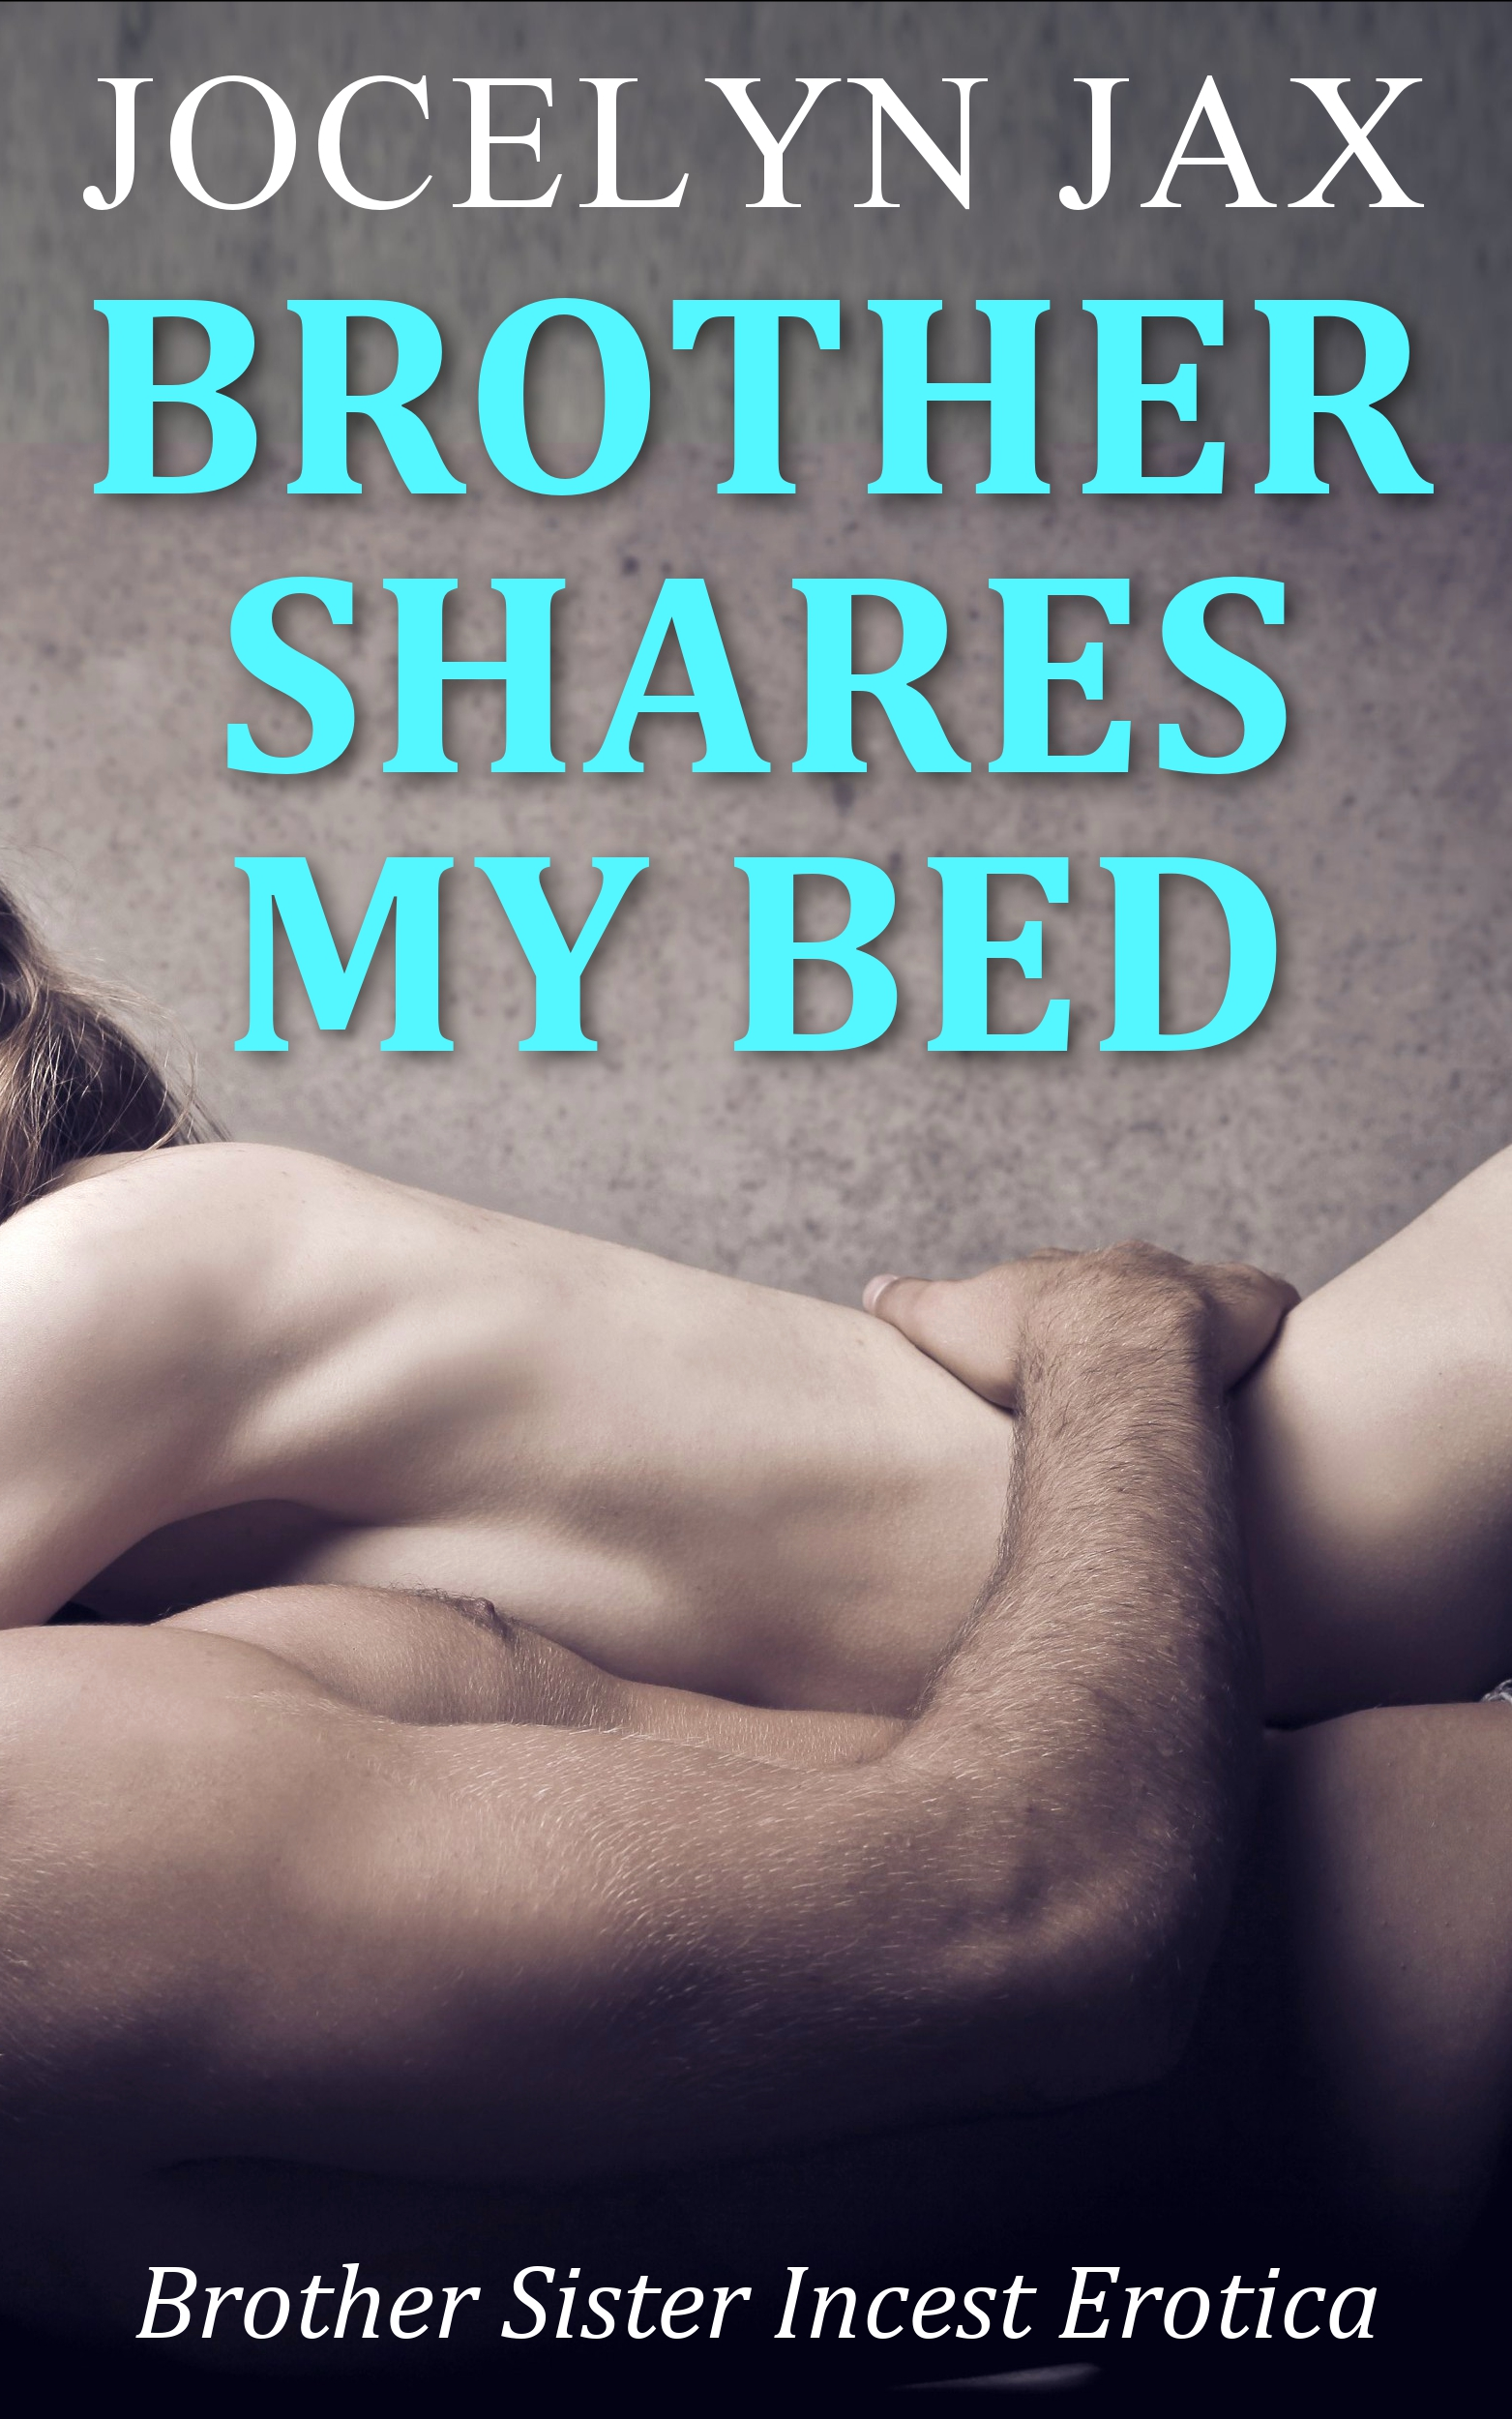 incest brother sister Brother Shares My Bed: Brother Sister Incest Erotica